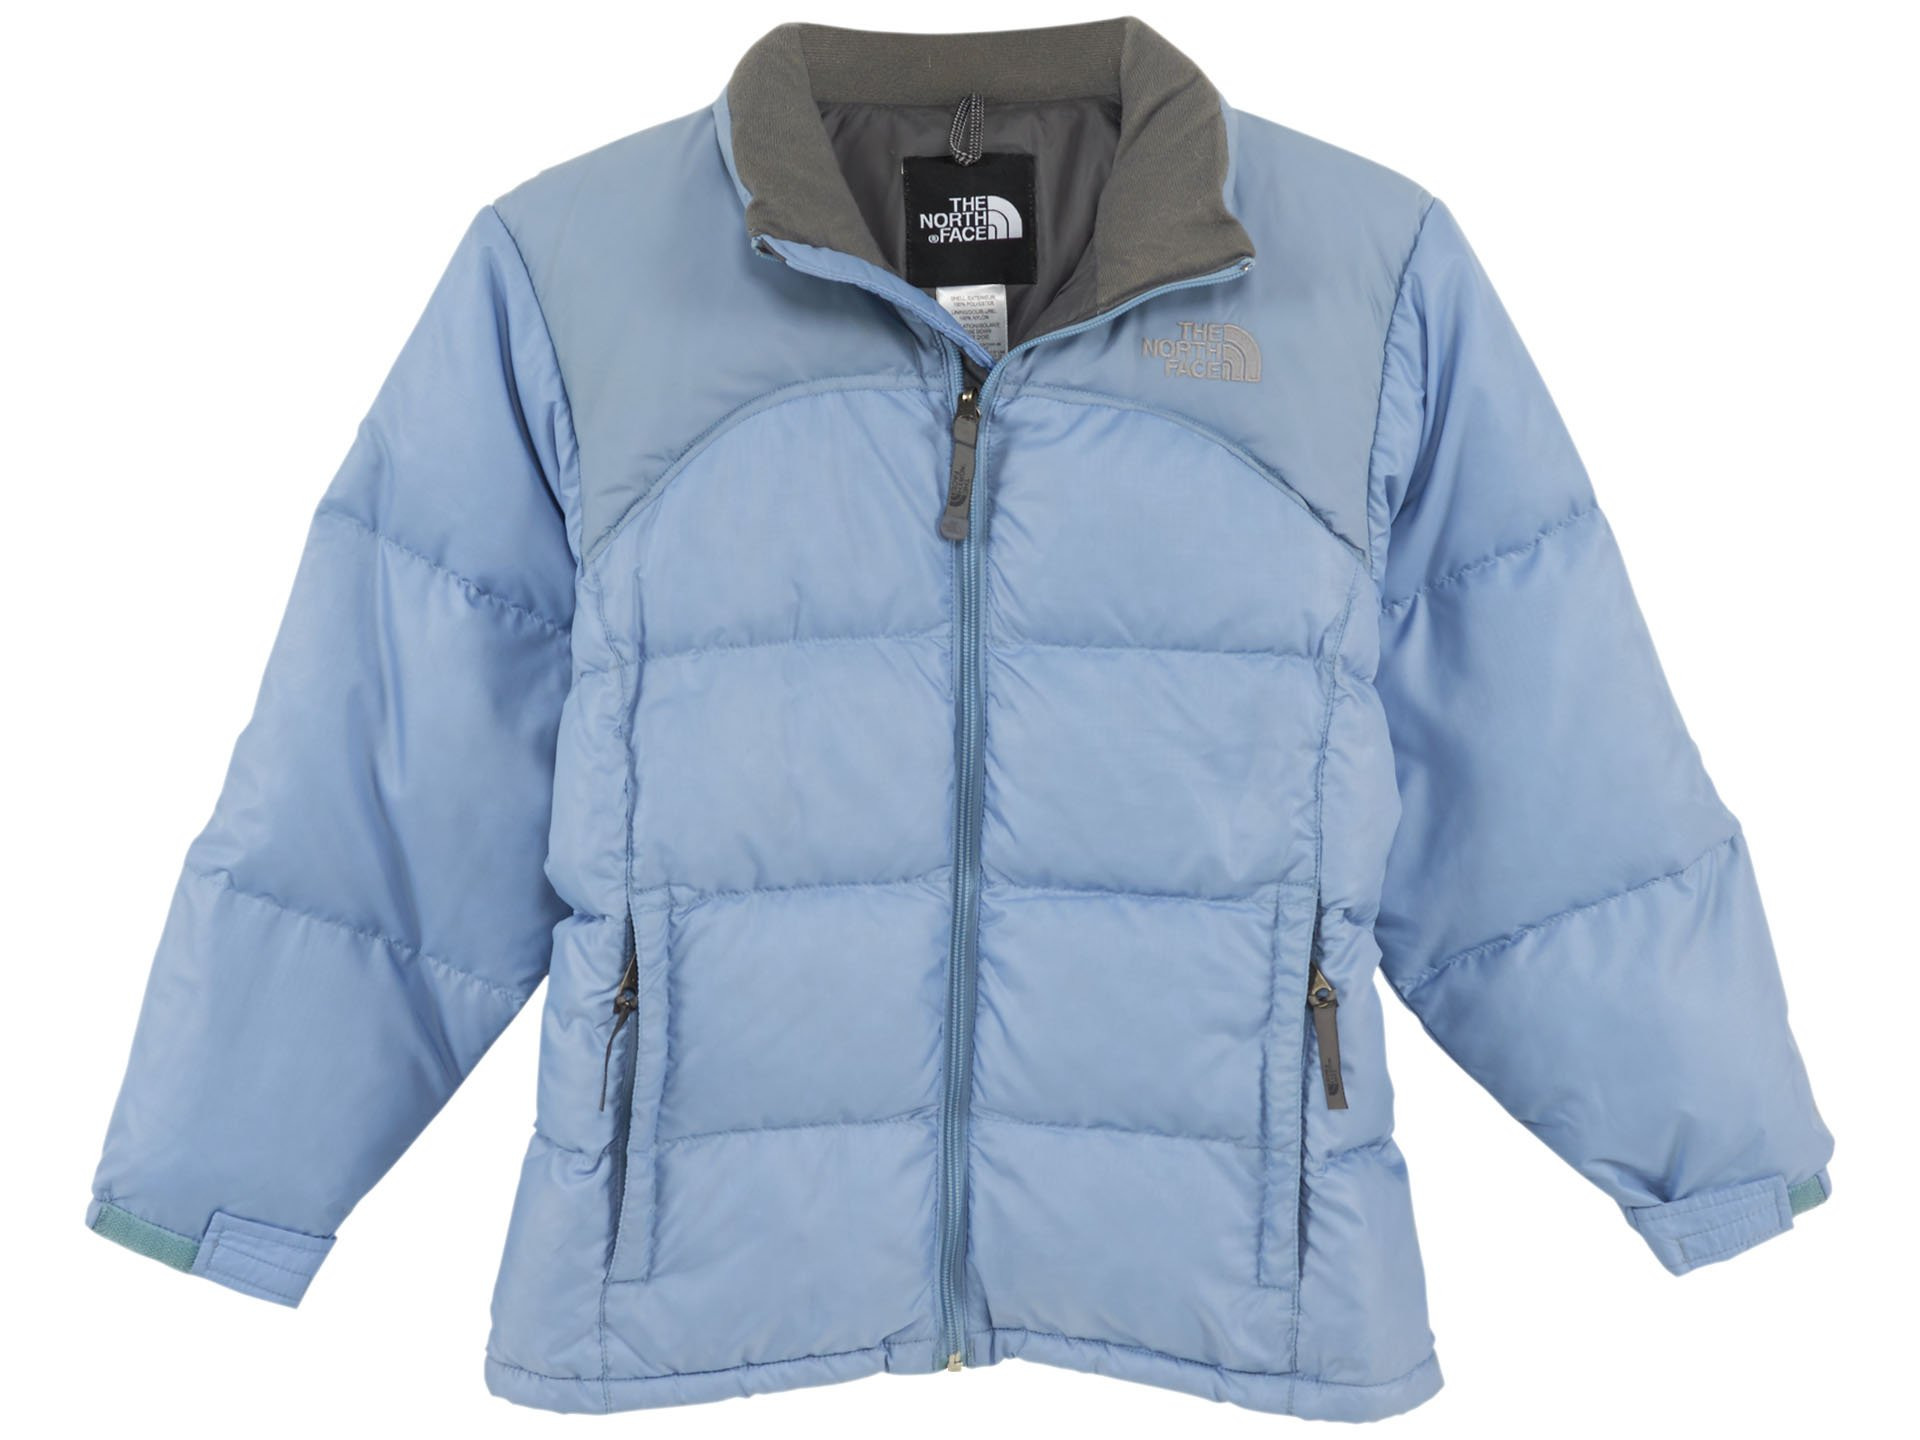 The North Face Nuptse Jacket Big Kids Style: A494-01C Size: L by The North Face